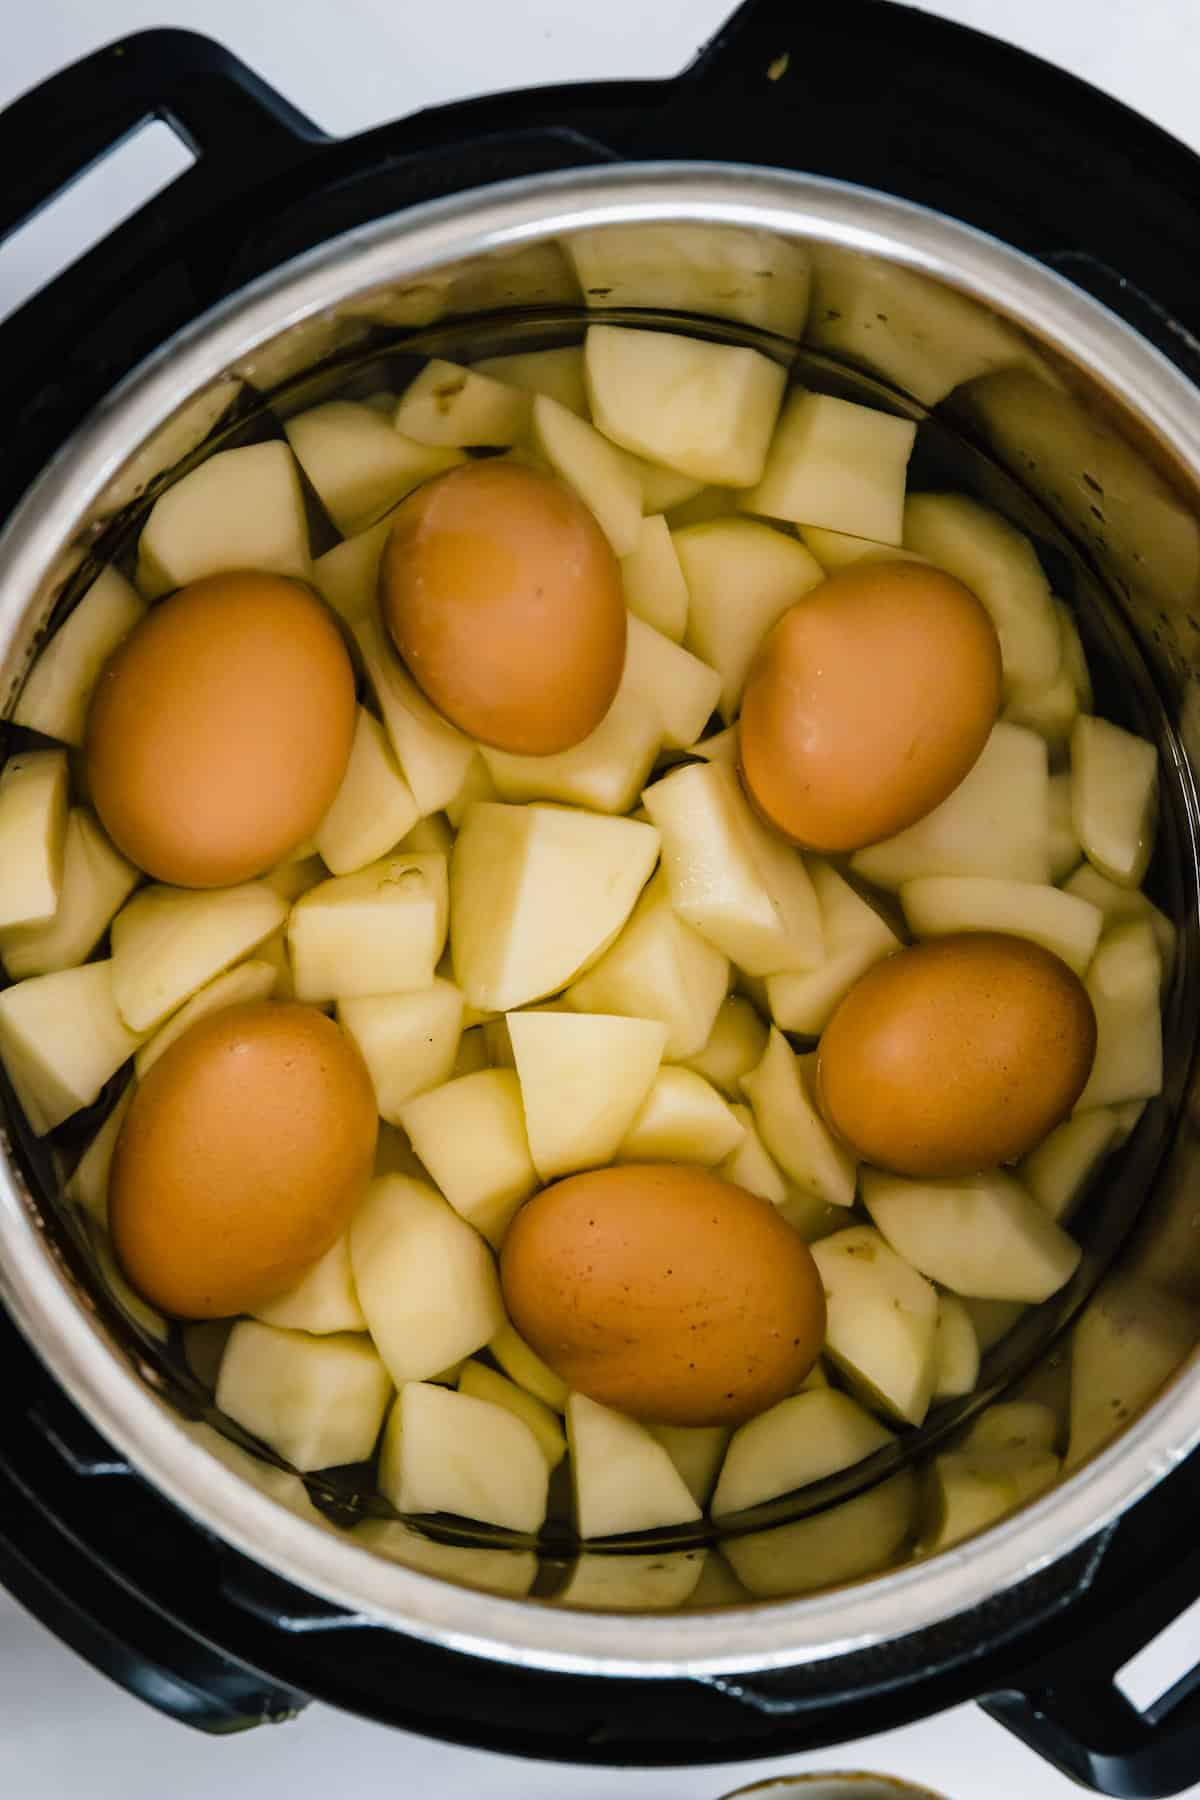 Peeled and Chopped Potatoes in an Instant Pot with Six Eggs on Top